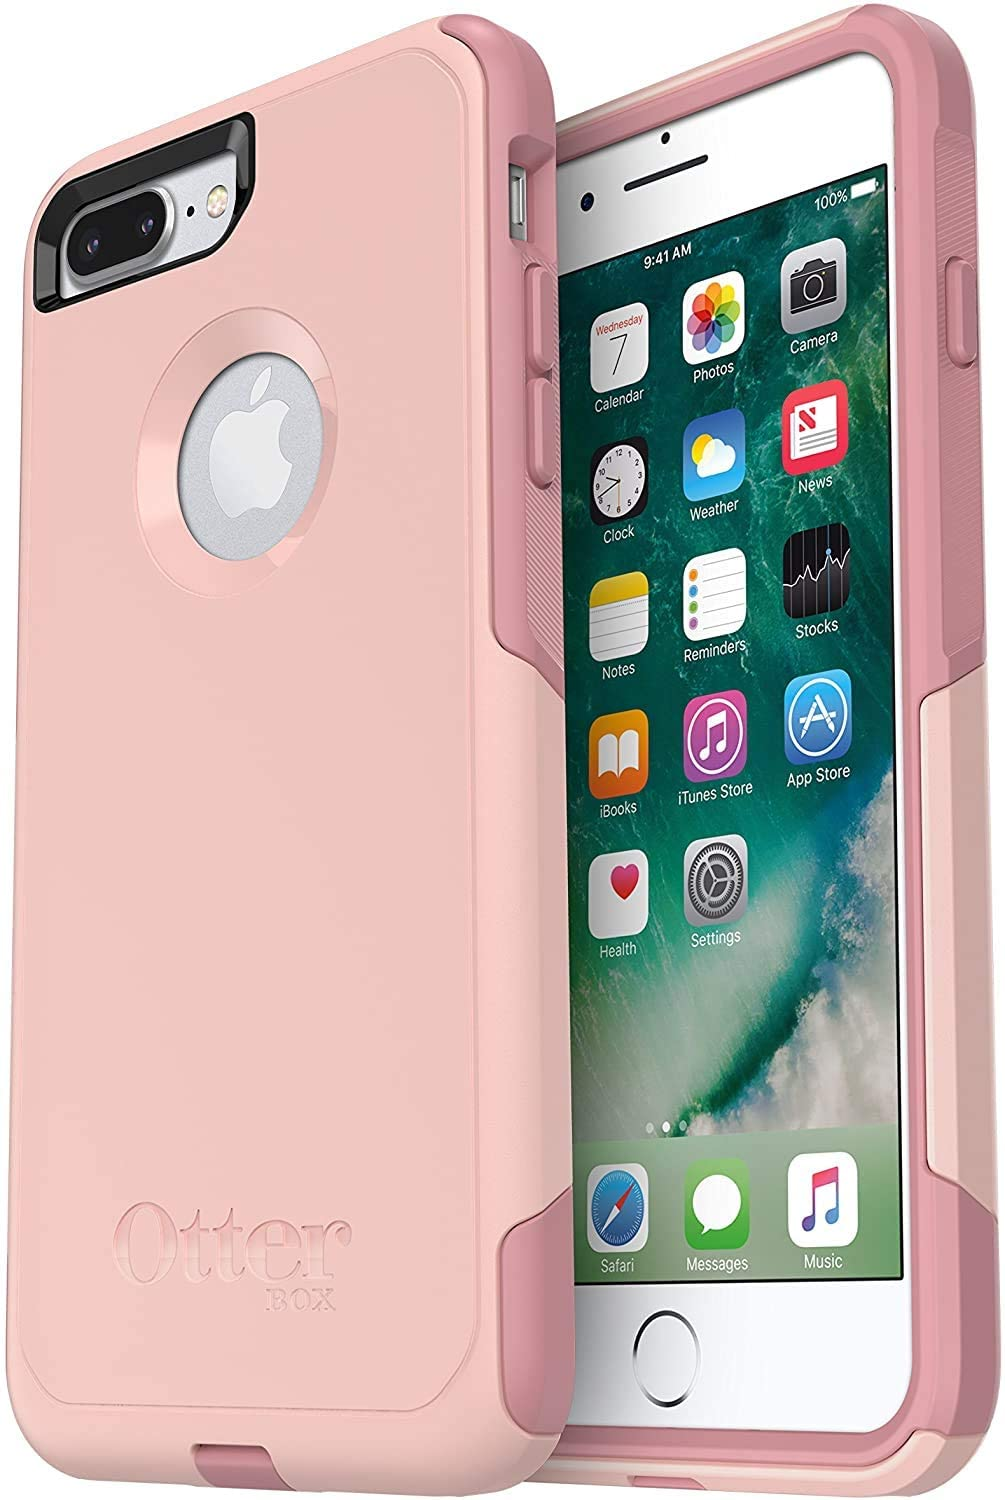 OtterBox Commuter Series Case for iPhone 8 Plus & iPhone 7 Plus (ONLY) - Non-Retail Packaging - Ballet Way (Pink Salt/Blush)